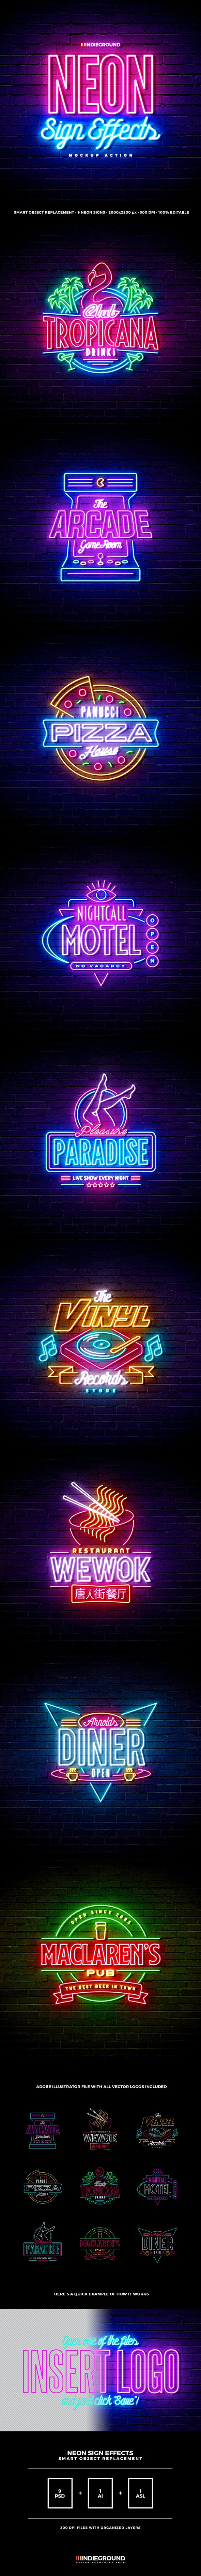 Neon Sign Effects - Photoshop Add-ons